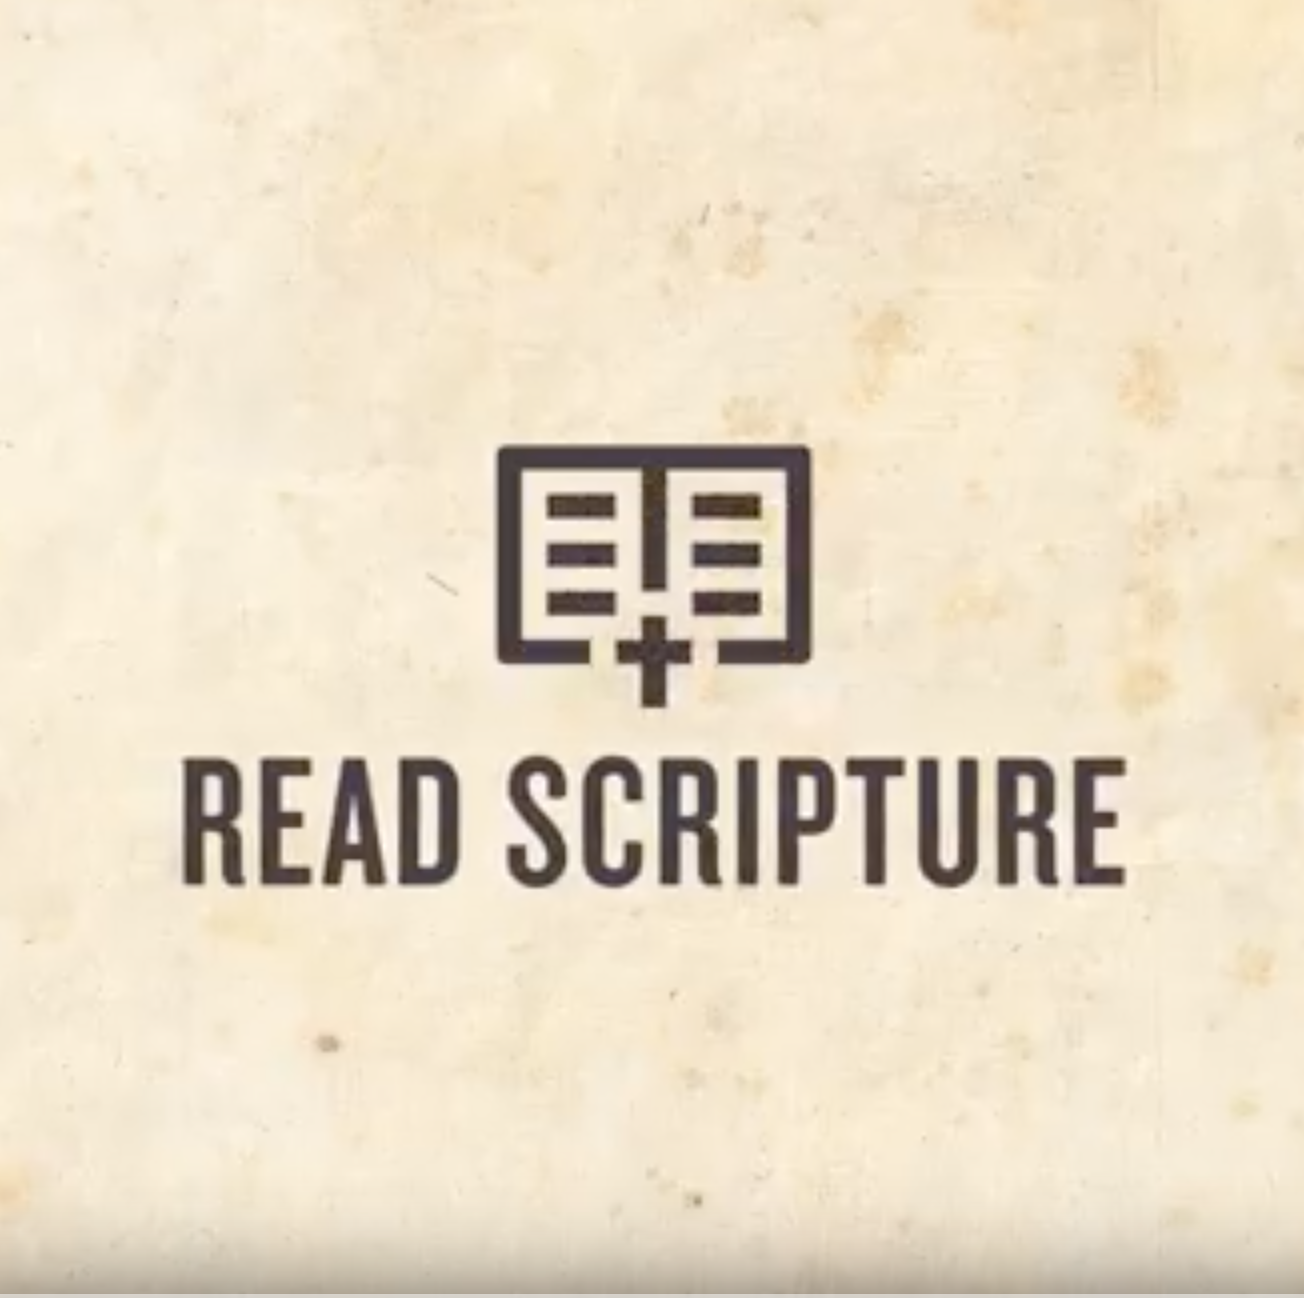 Read Scripture—An Innovative Bible Reading Tool